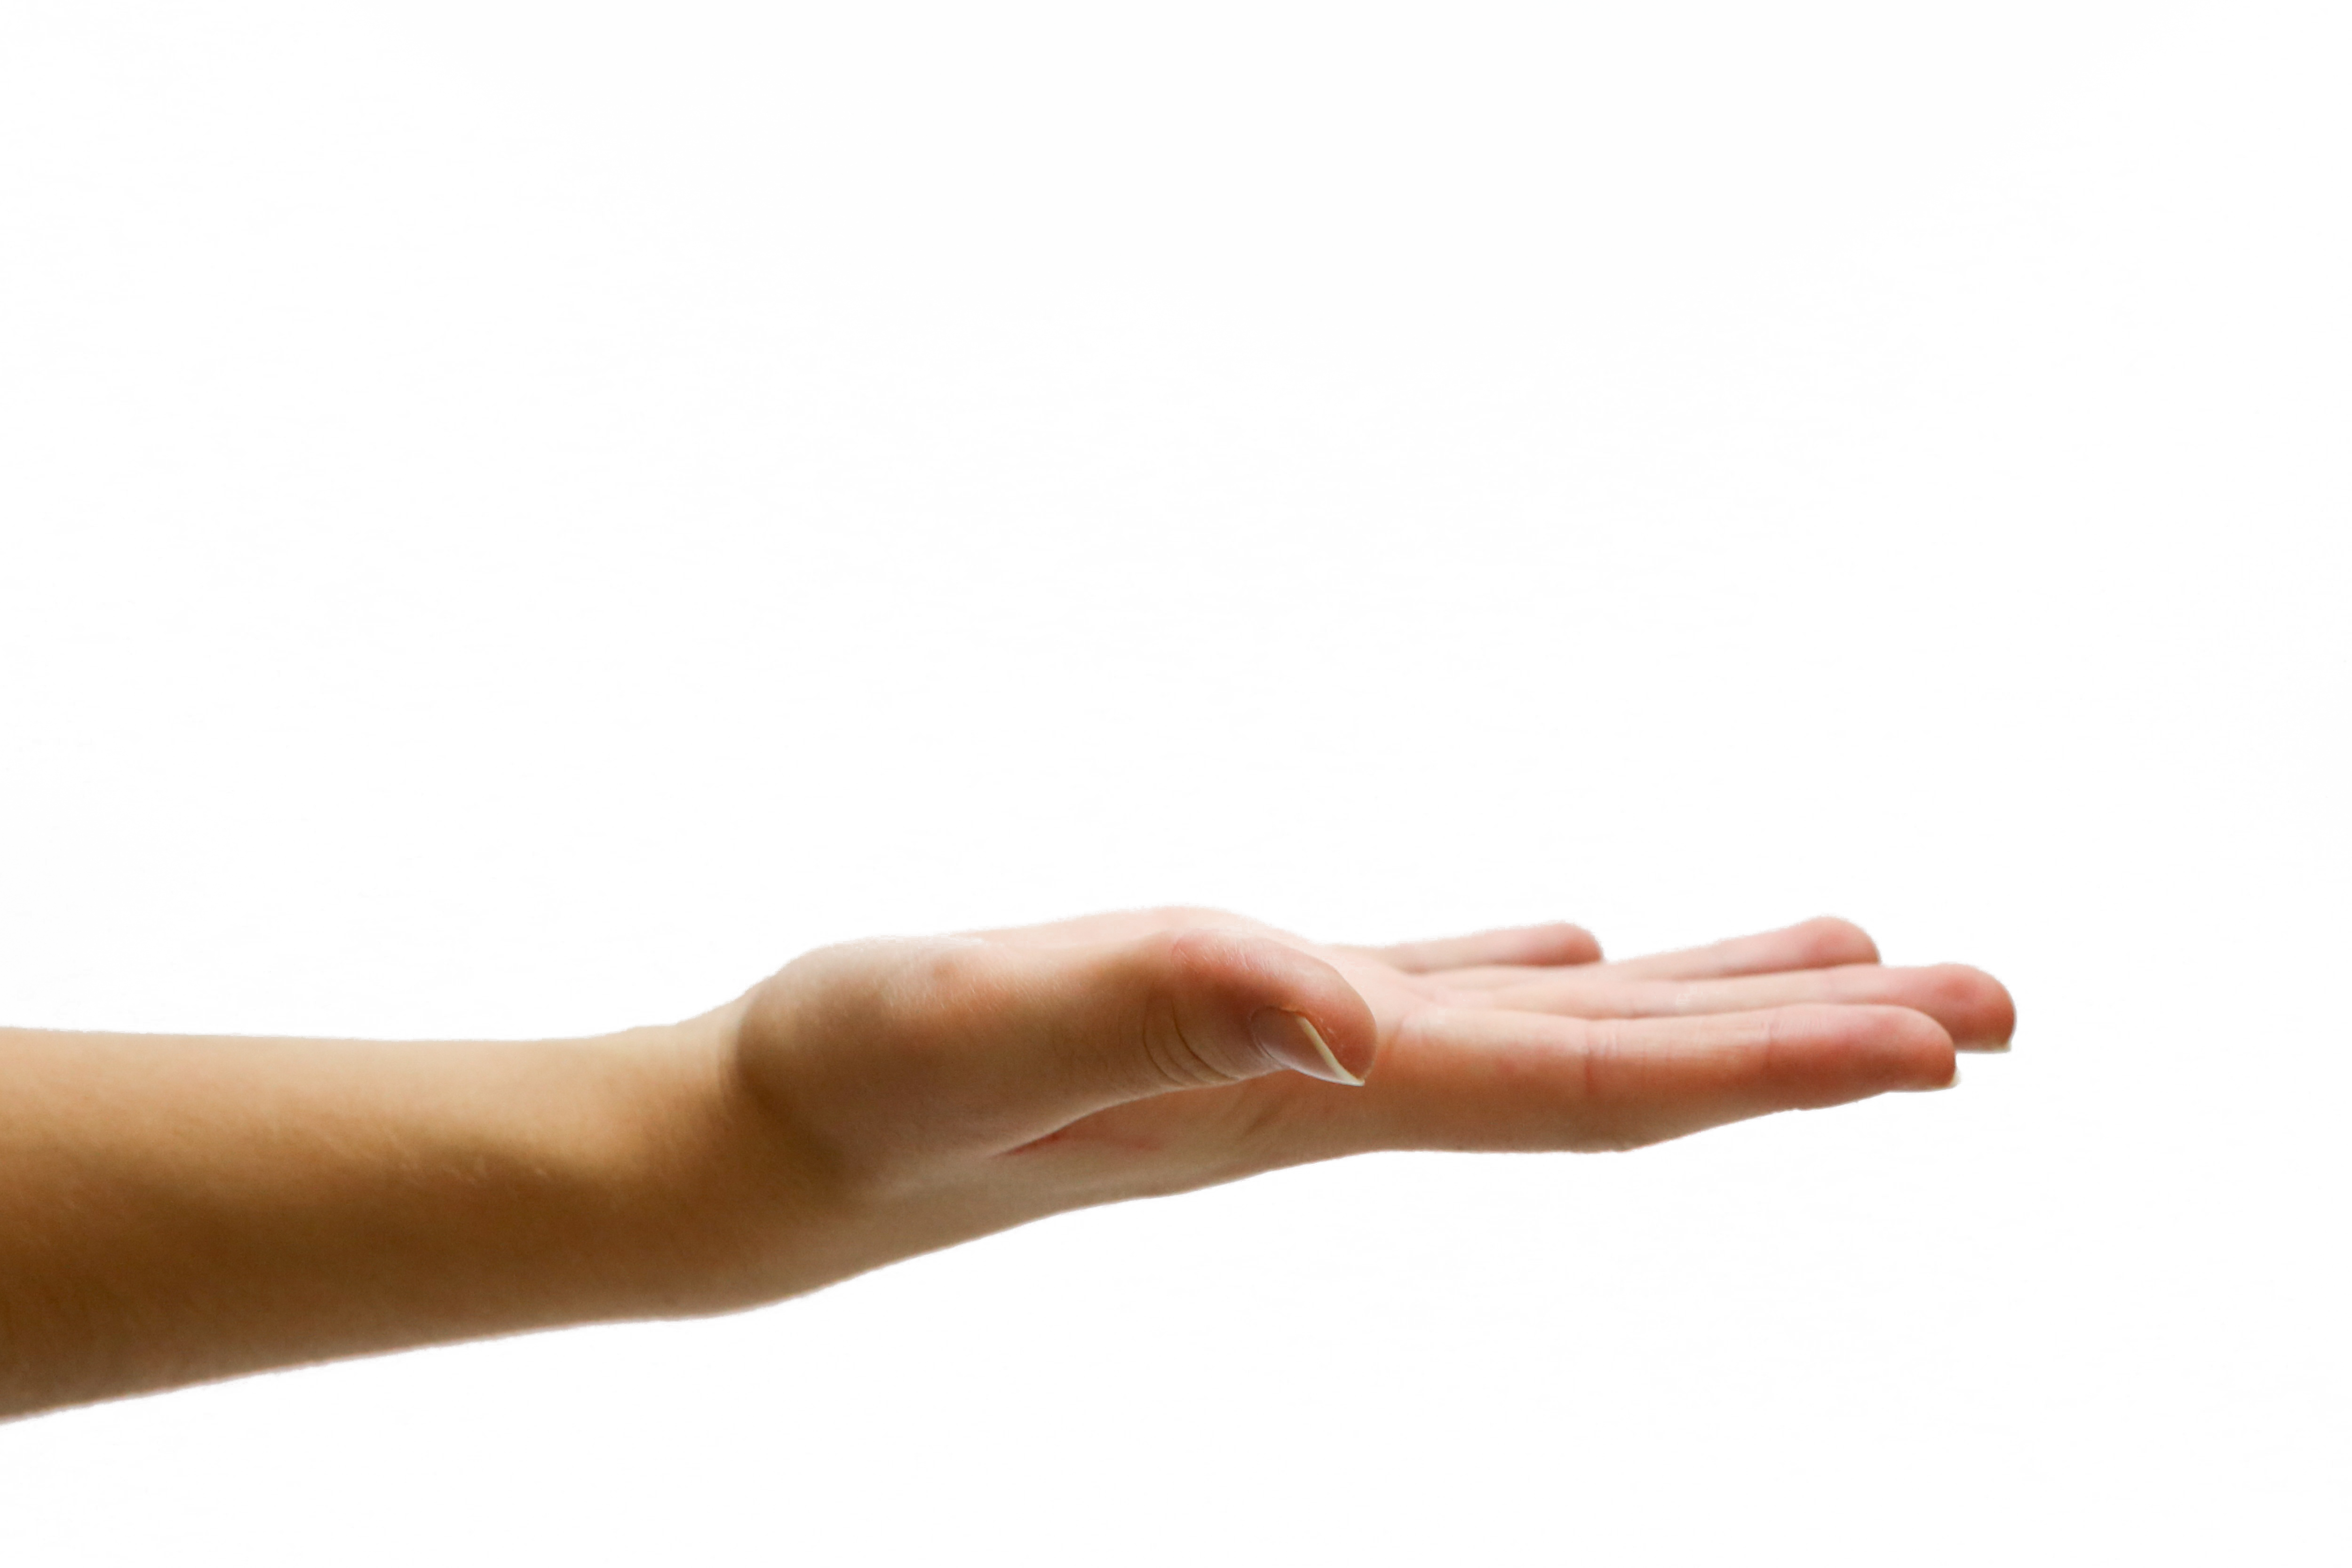 Png image purepng free. Skin clipart opened hand